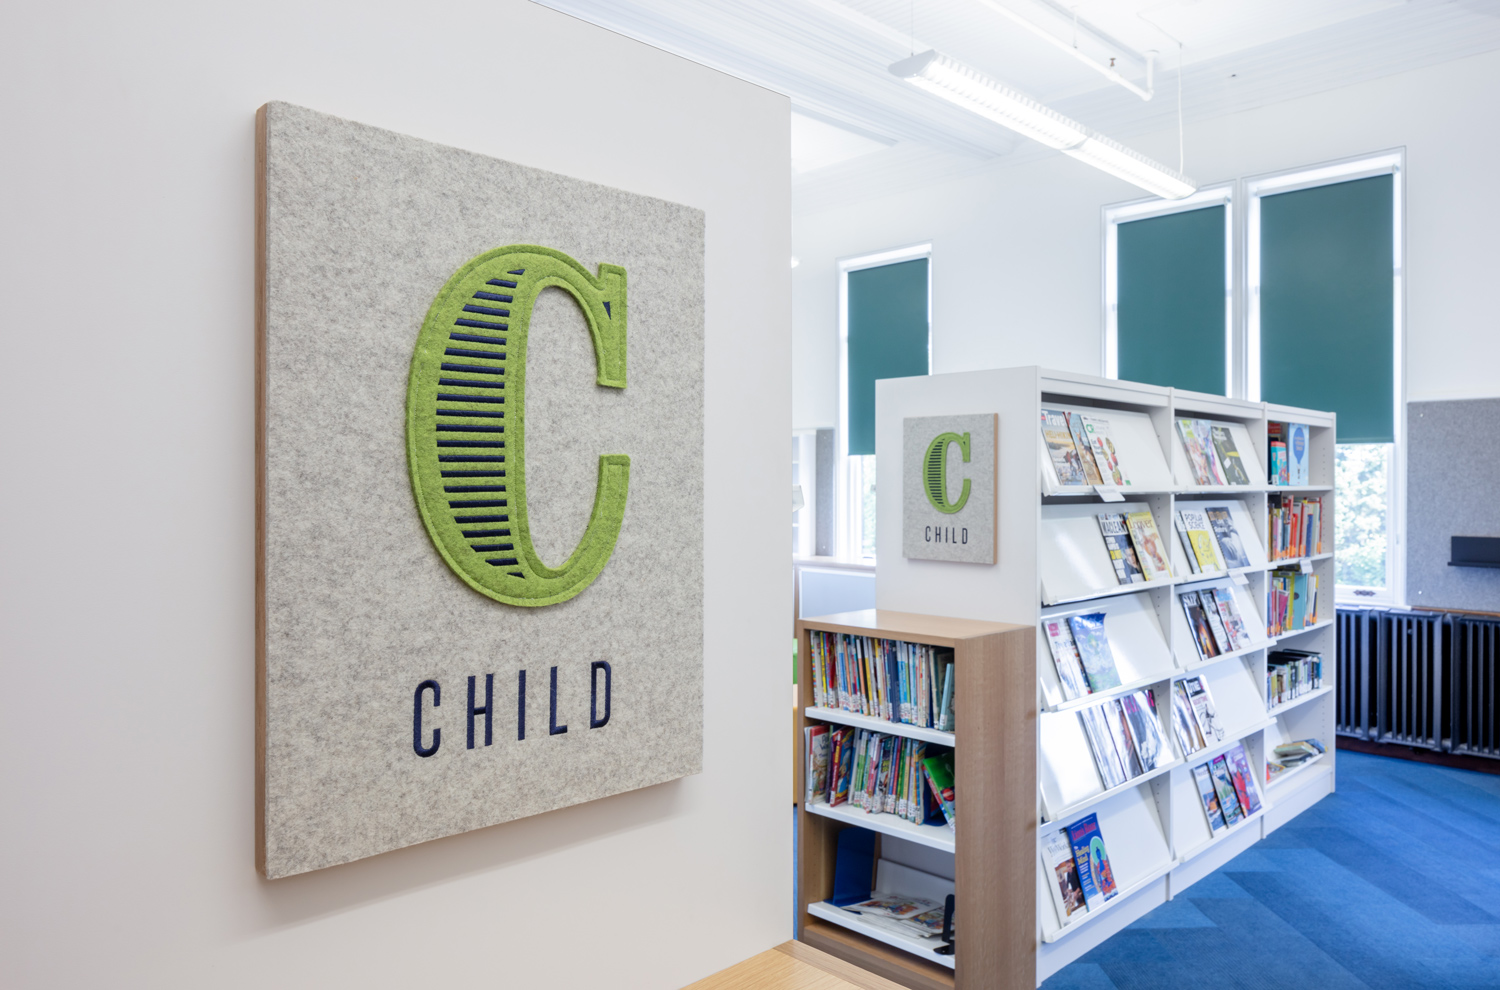 Child---Lunenburg-Library---credit-Julian-Parkinson---28AUG2018_06A0569-web.jpg